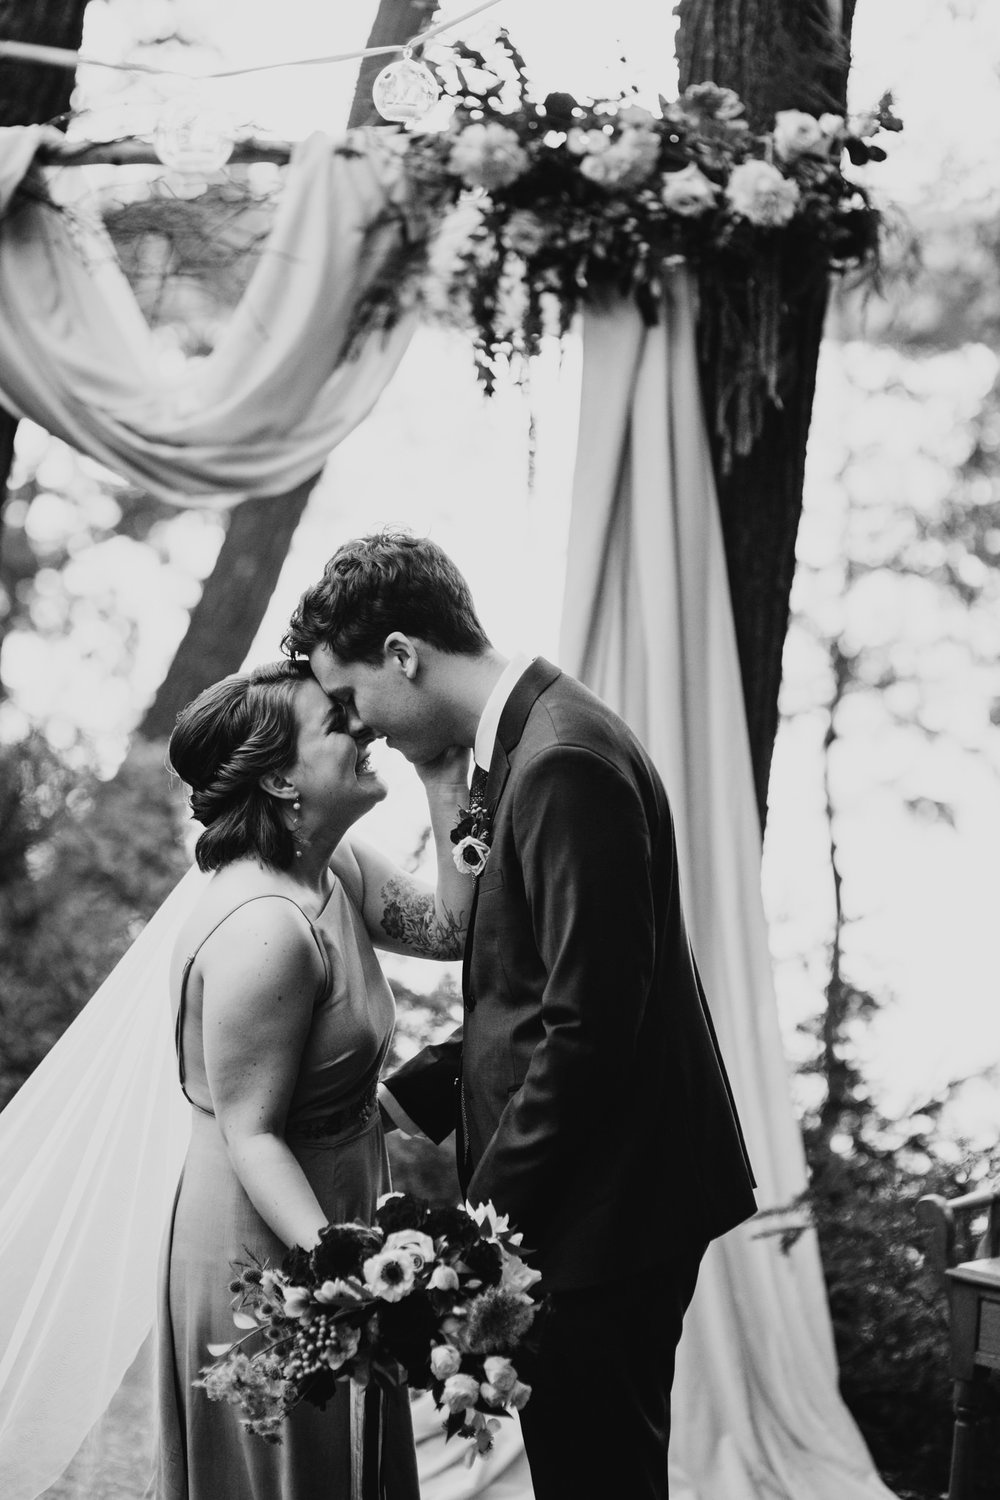 Moody, intimate wedding photos, Junebug